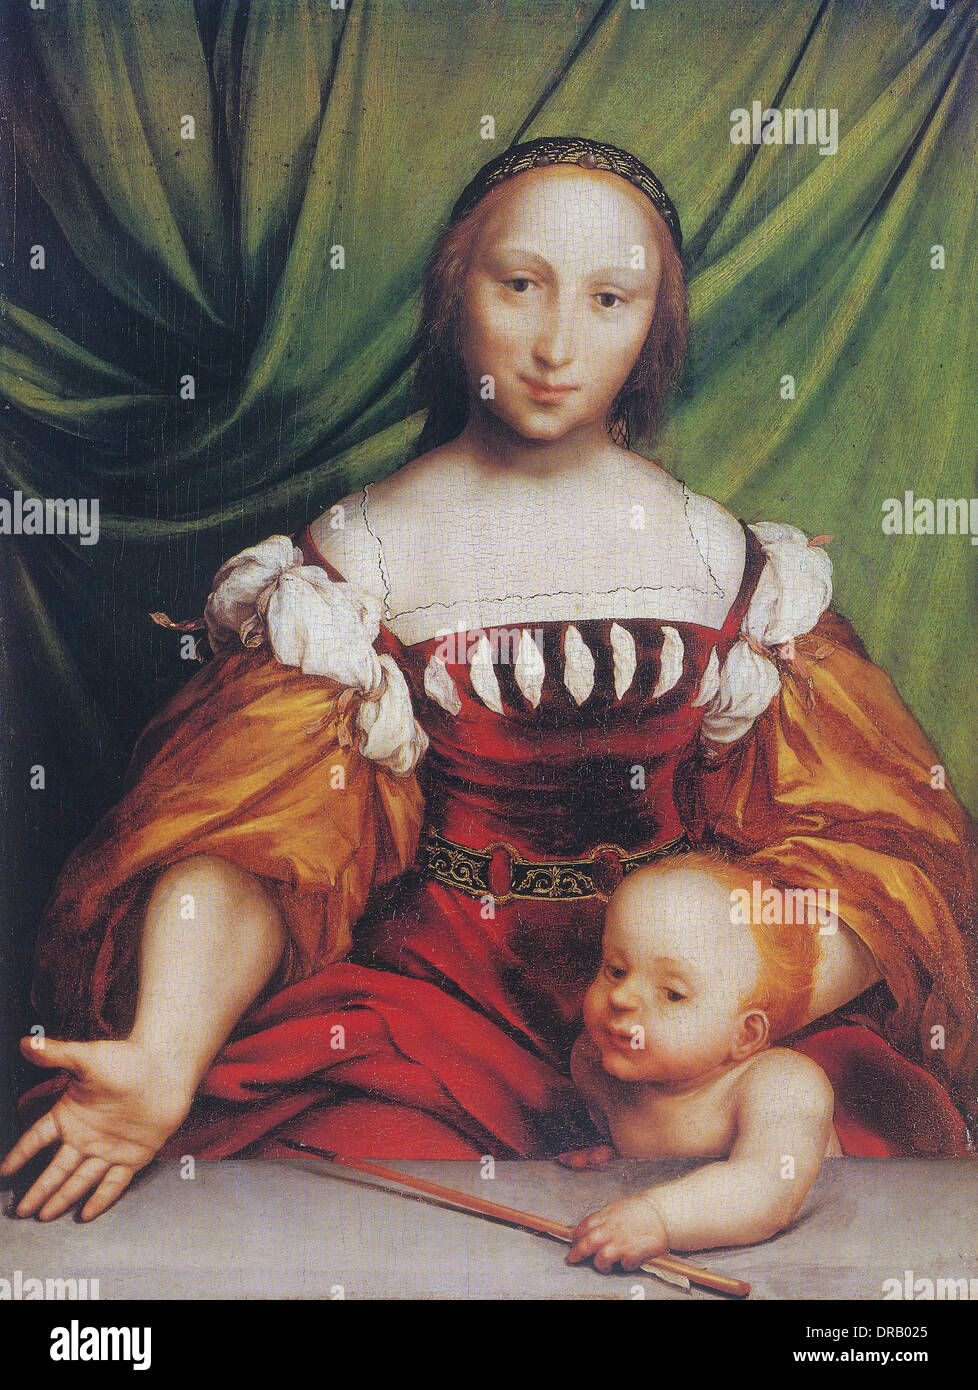 Venus, the Roman goddess of love, with Amor (Cupid) clutching love's arrow by Hans Holbein the Younger - Stock Image